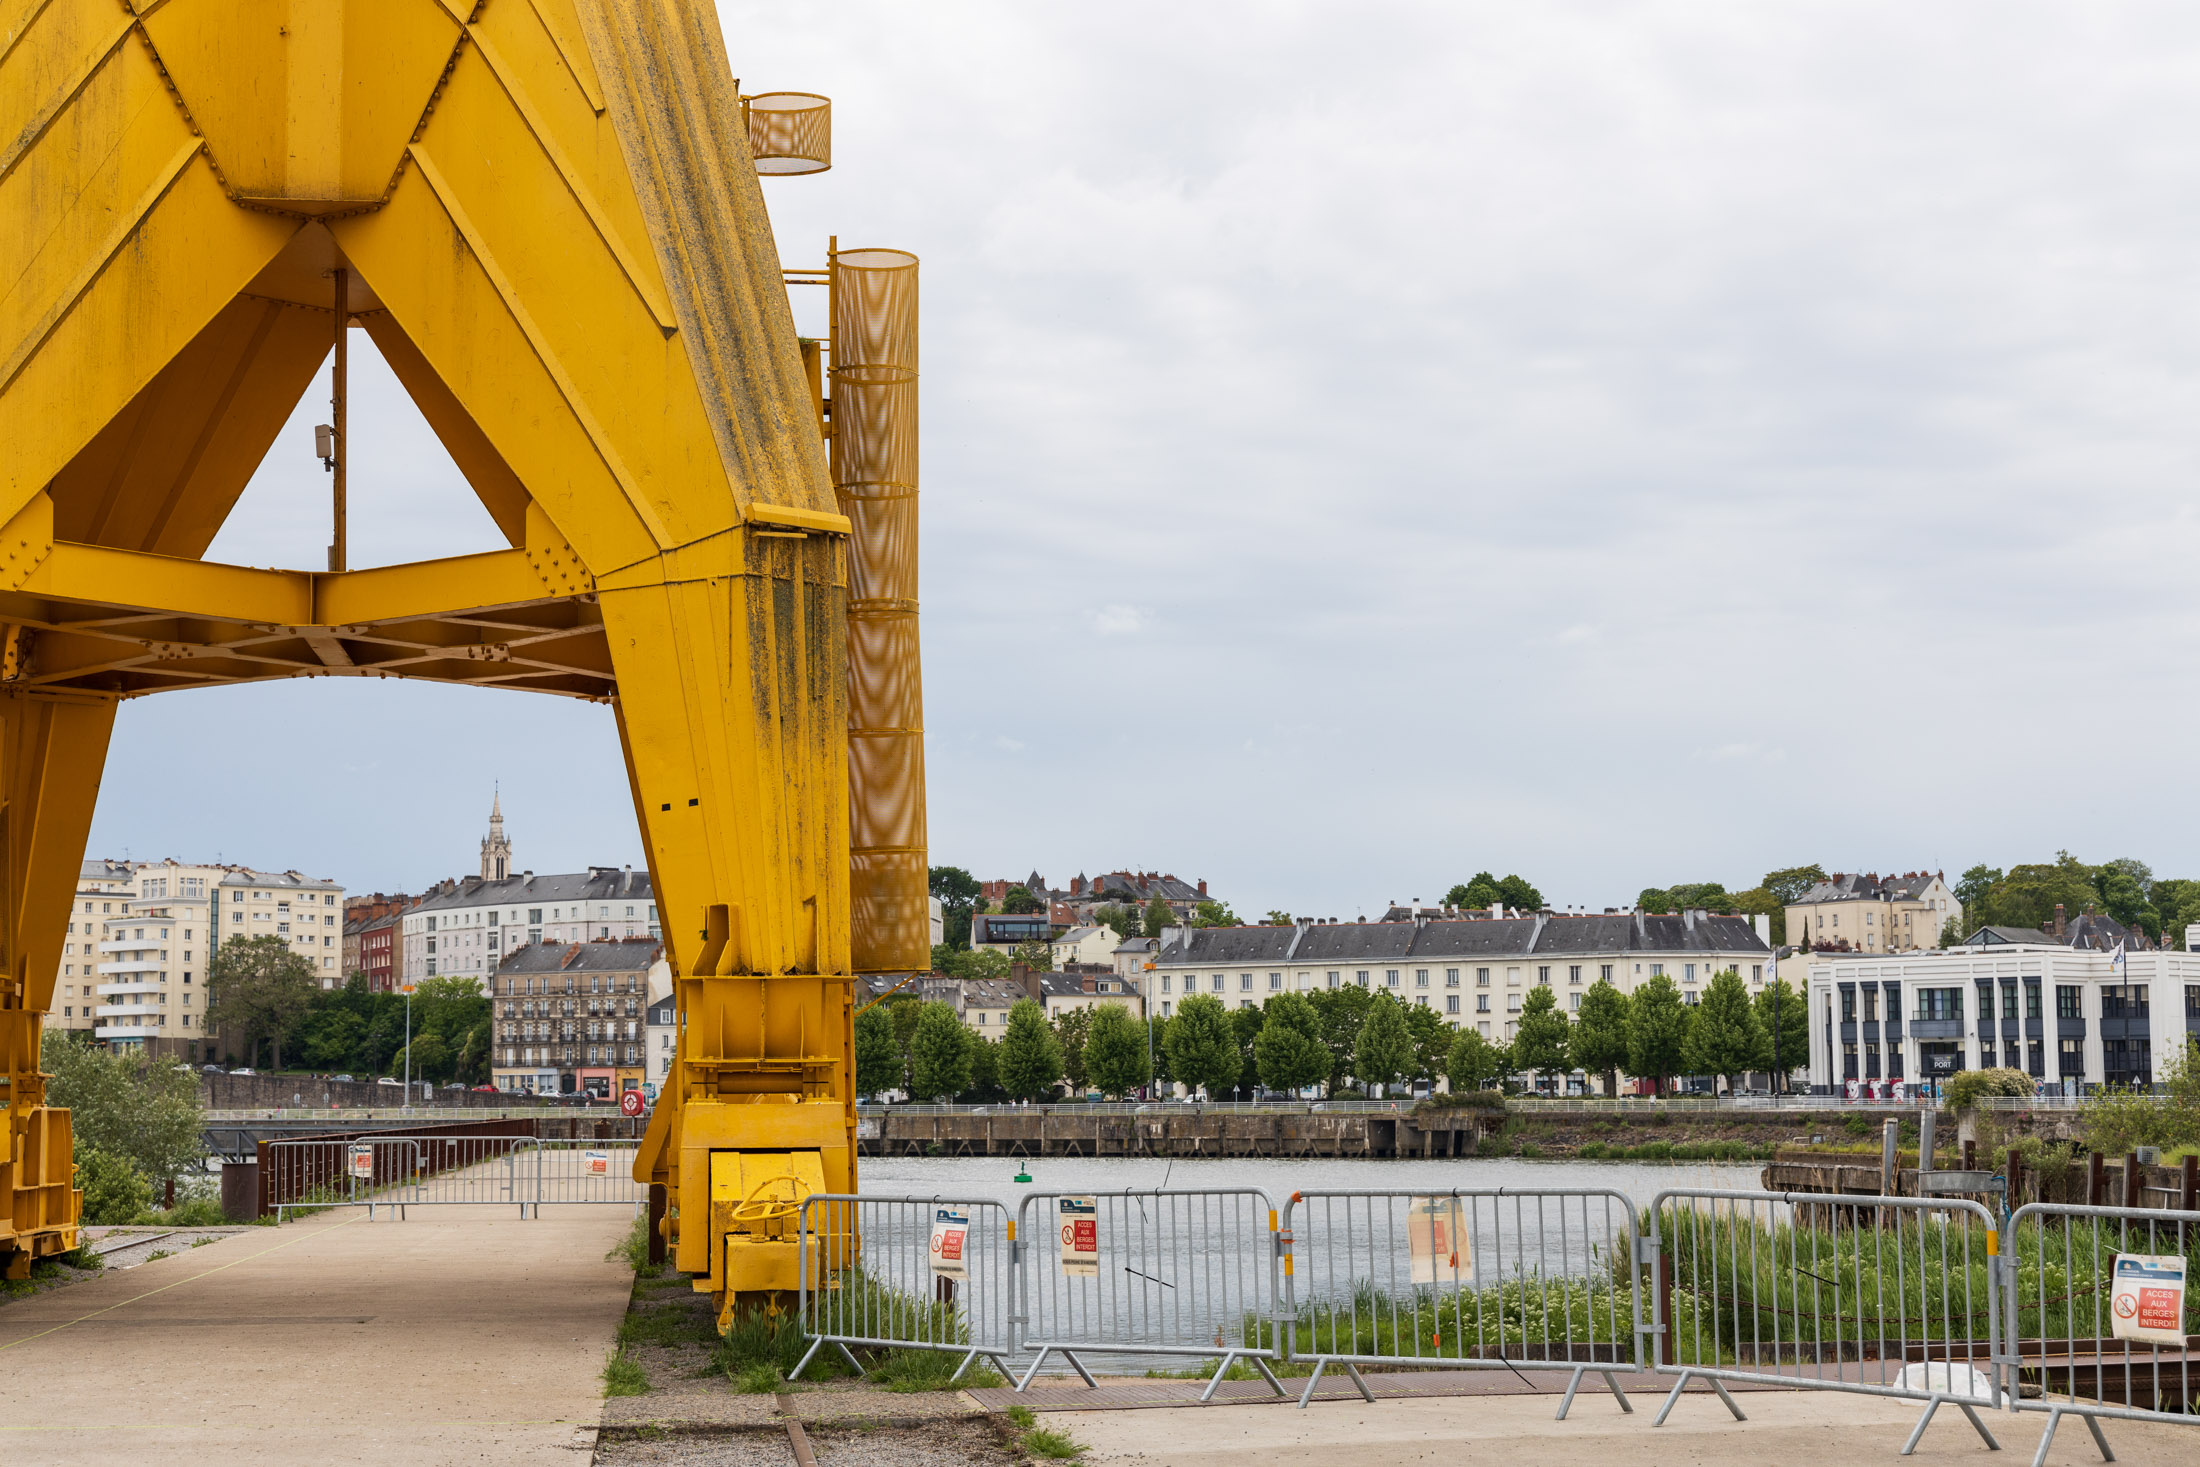 At the foot of the yellow crane, the access to the Loire banks were closed on order of the prefecture. Nantes, France - May 4th 2020.Au pied de la grue jaune, l acces aux berges ont ete fermes sur ordre de la prefecture. Nantes, France - 4 avril 2020.